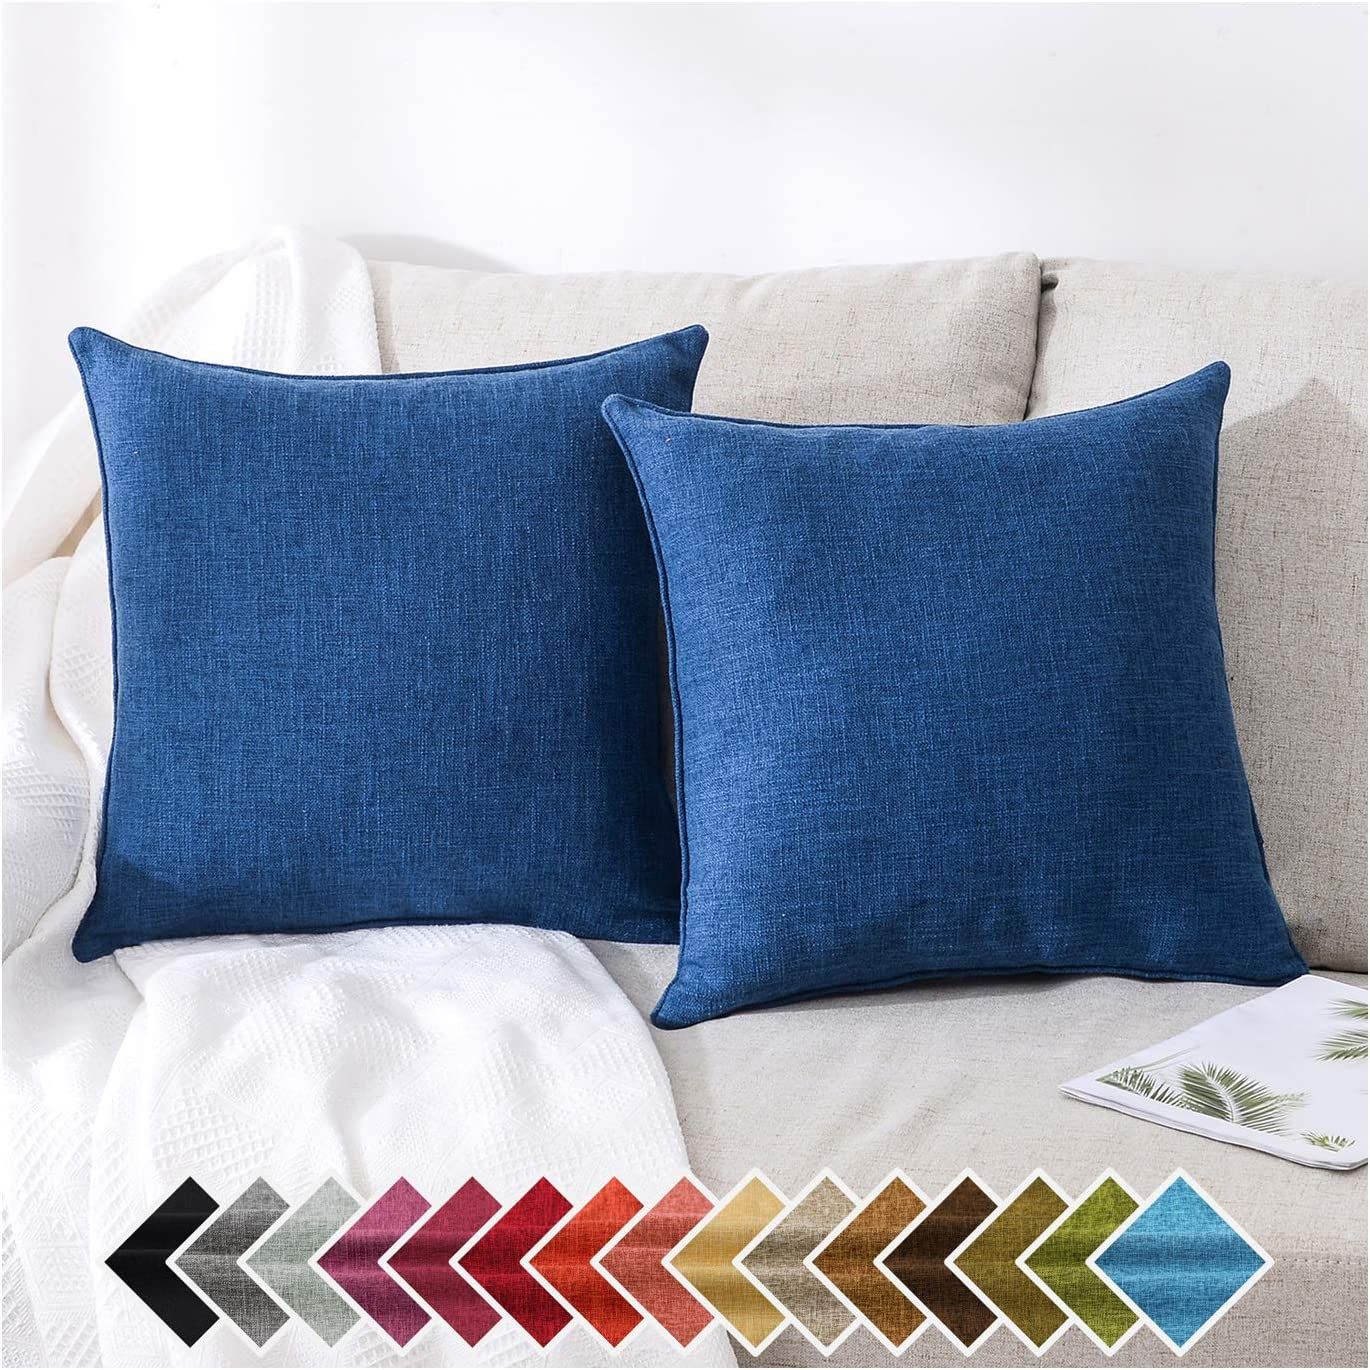 HPUK Pack of 2, Decorative Pillow Cover, Solid Color Pillowcase for Couch, Sofa, Bedroom, Car, Office, Holiday Decor,17x17 inch, Navy